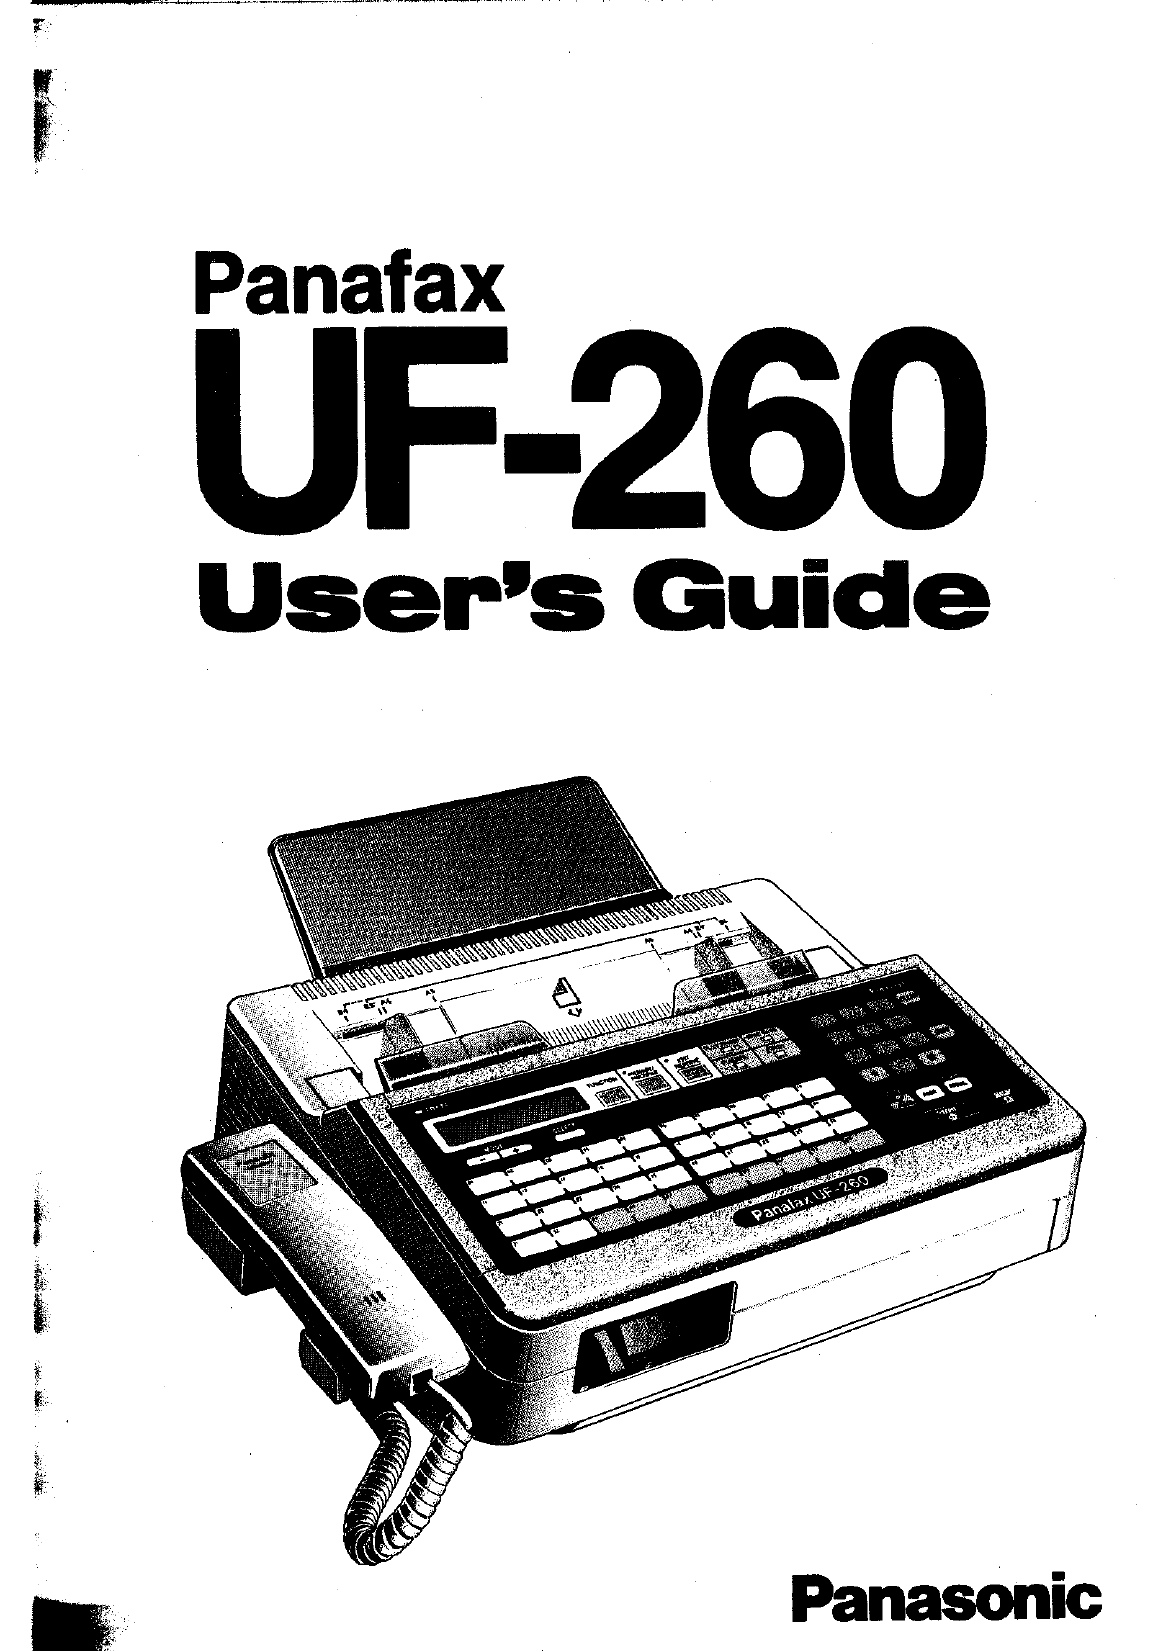 panasonic fax machine manual